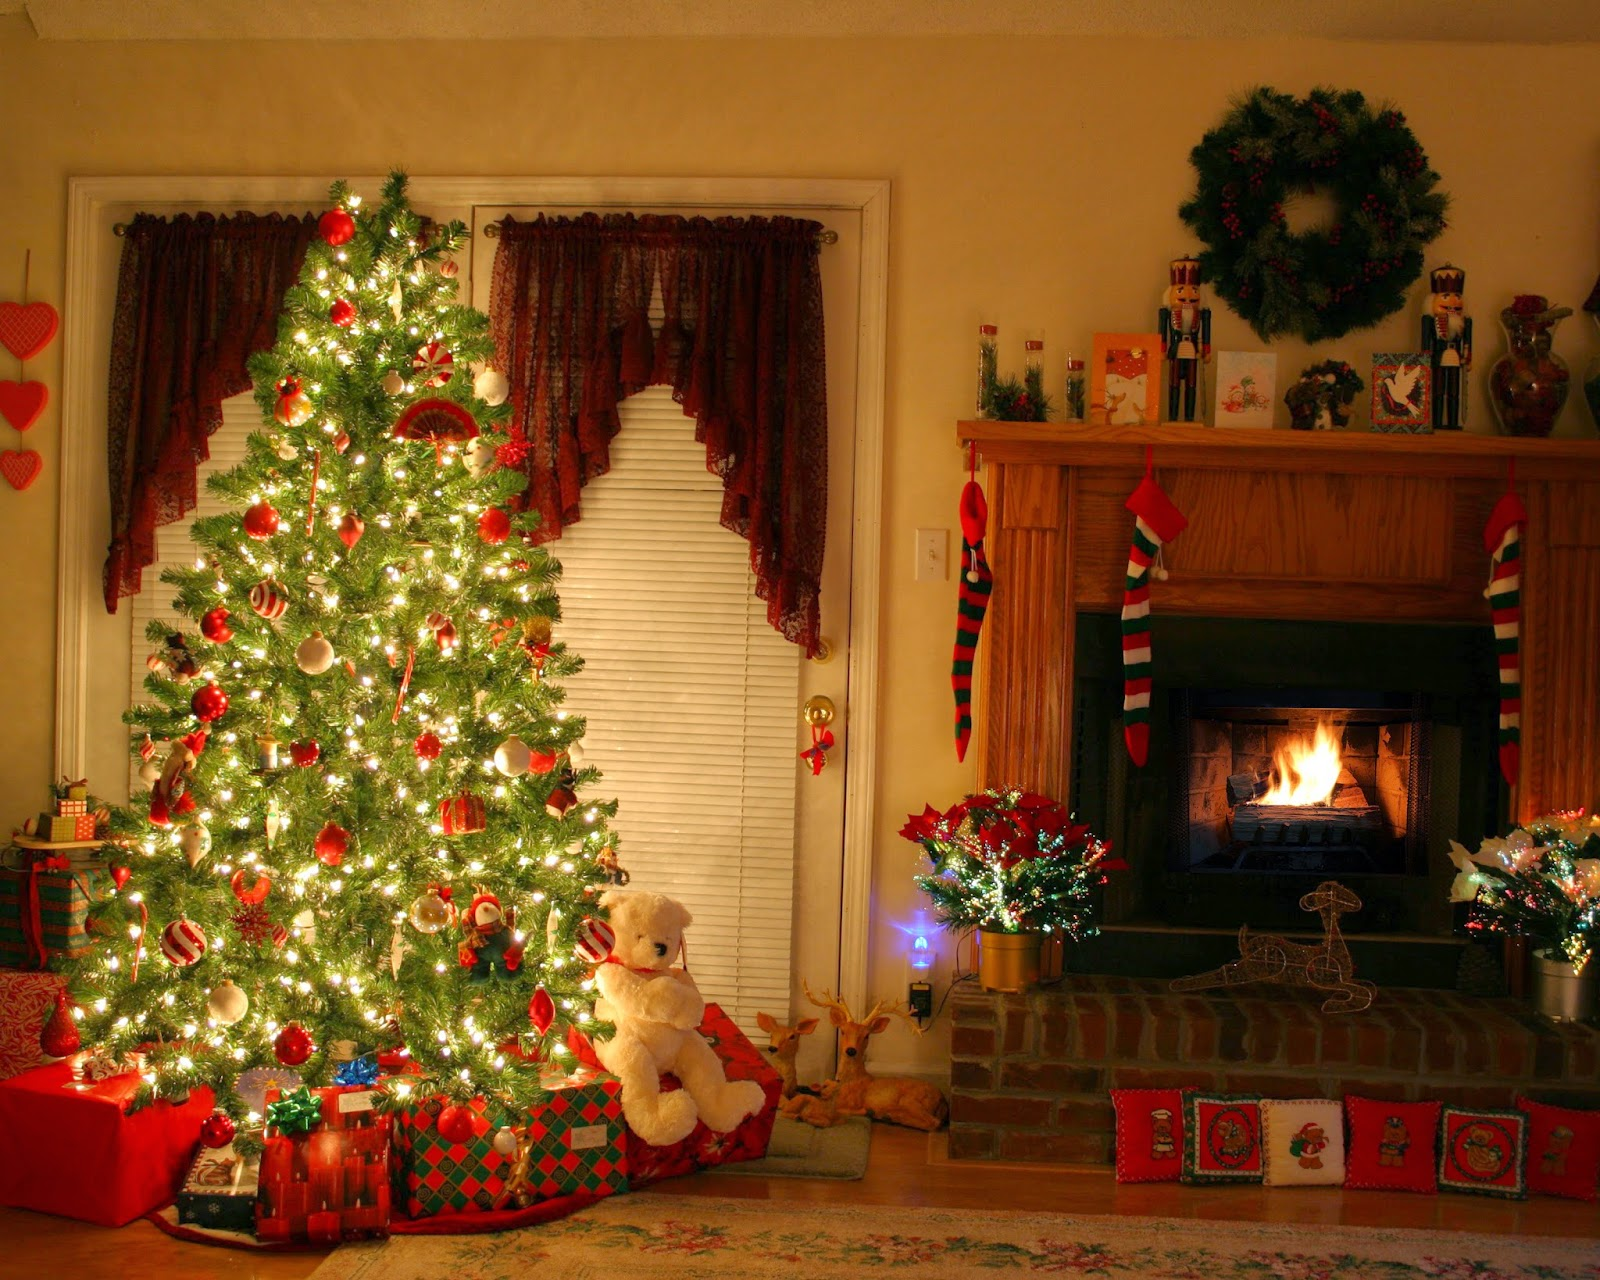 Christmas-traditional-decorating-ideas-for-home-family-2920x2336.jpg